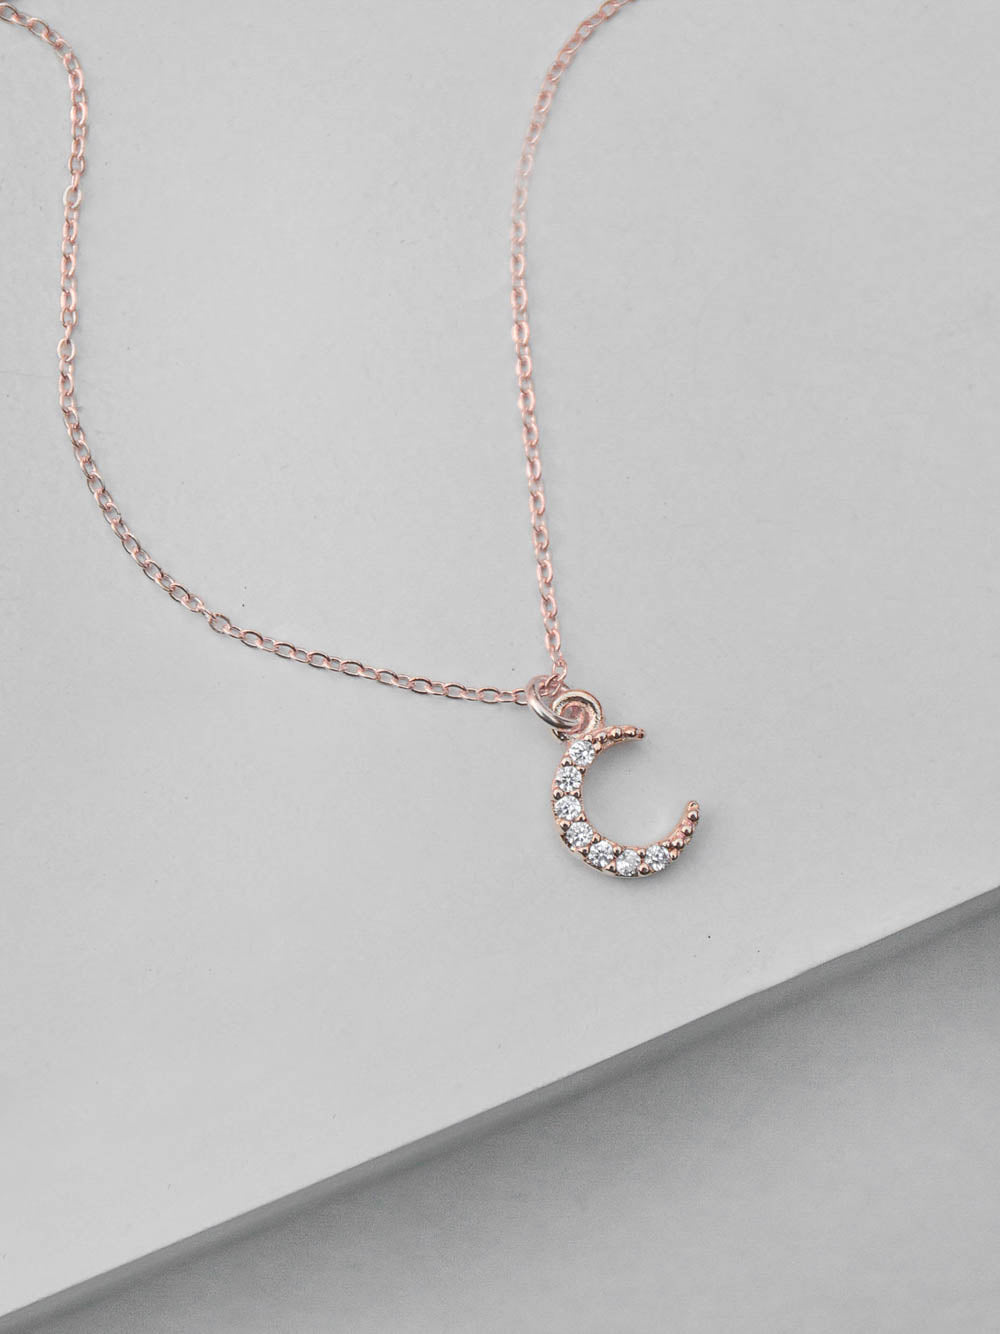 Mini Crescent CZ Charm Rose Gold  Necklace by The Faint Hearted Jewelry